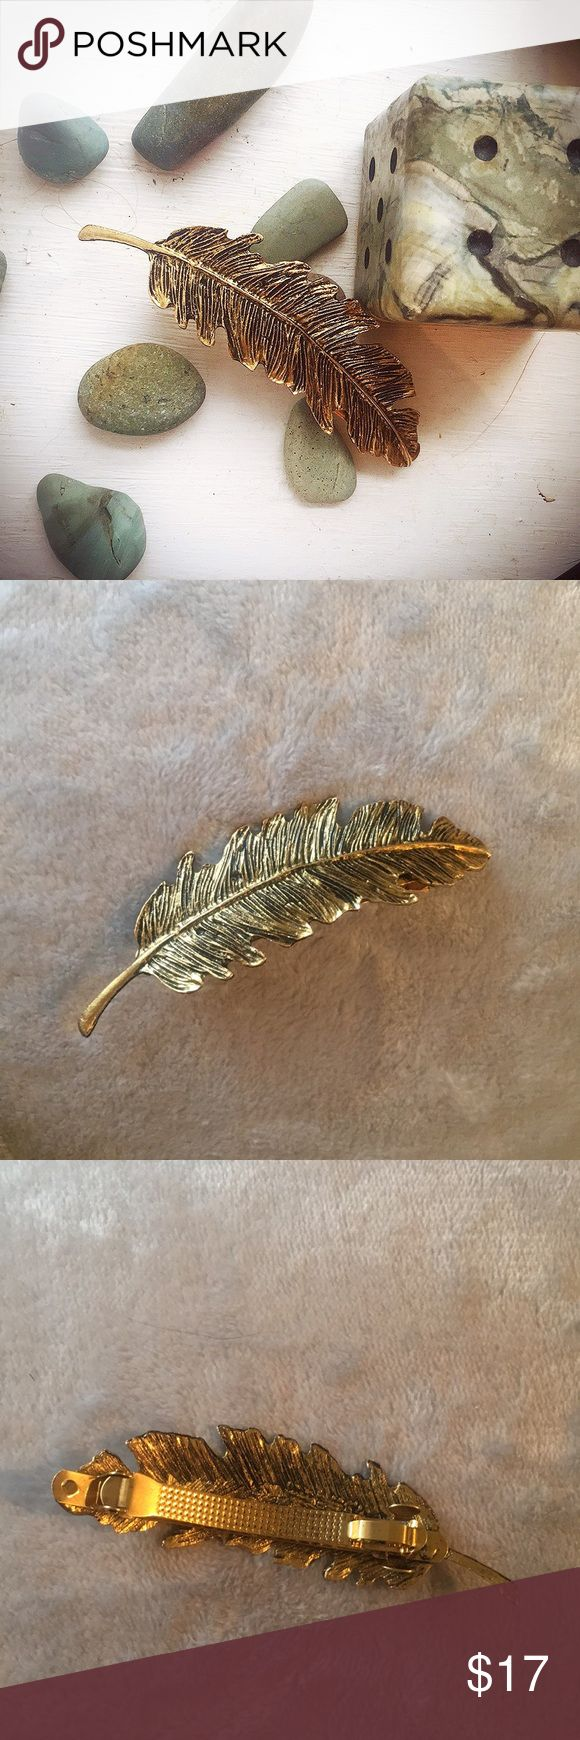 Antique Feather Barrette Gold/Brass colored hand made antique barrette. The second and third pictures are not filtered.  Full disclosure: the old Bobby-pin of this barrette actually broke, so I superglued  the barrette piece on. It is completely unnoticeable when worn. It is not worth it's original antique value after these adjustments, but it's still certainly just as beautiful!   I believe the metal is alloy  Anthro tagged for exposure Anthropologie Accessories Hair Accessories